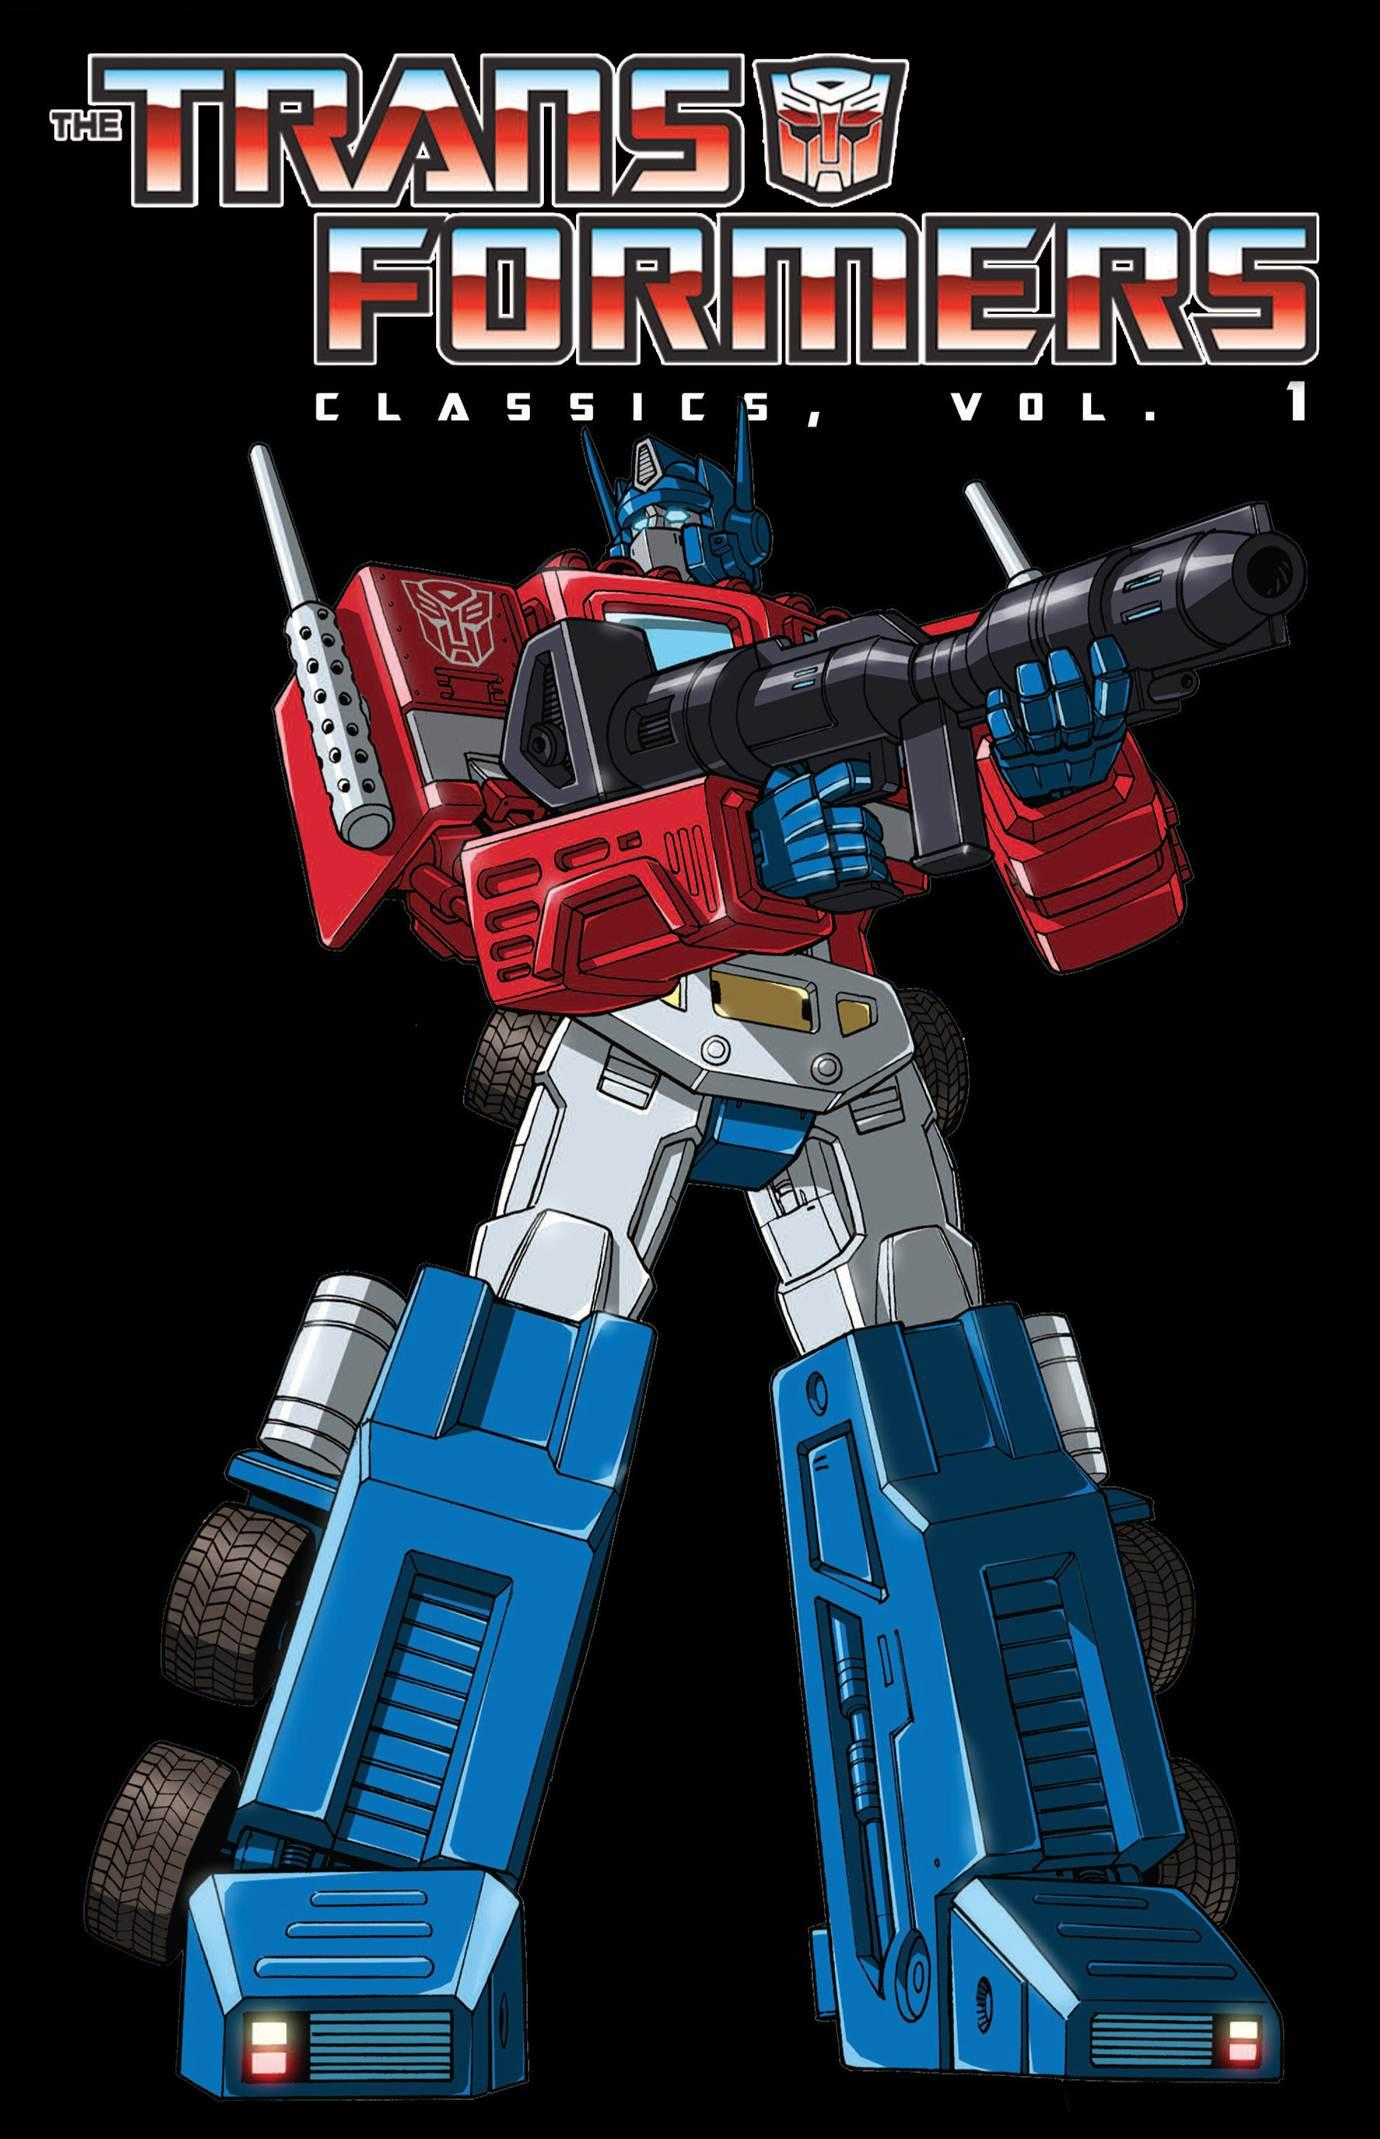 The Transformers - Classics Vol. 1 (2011) free download